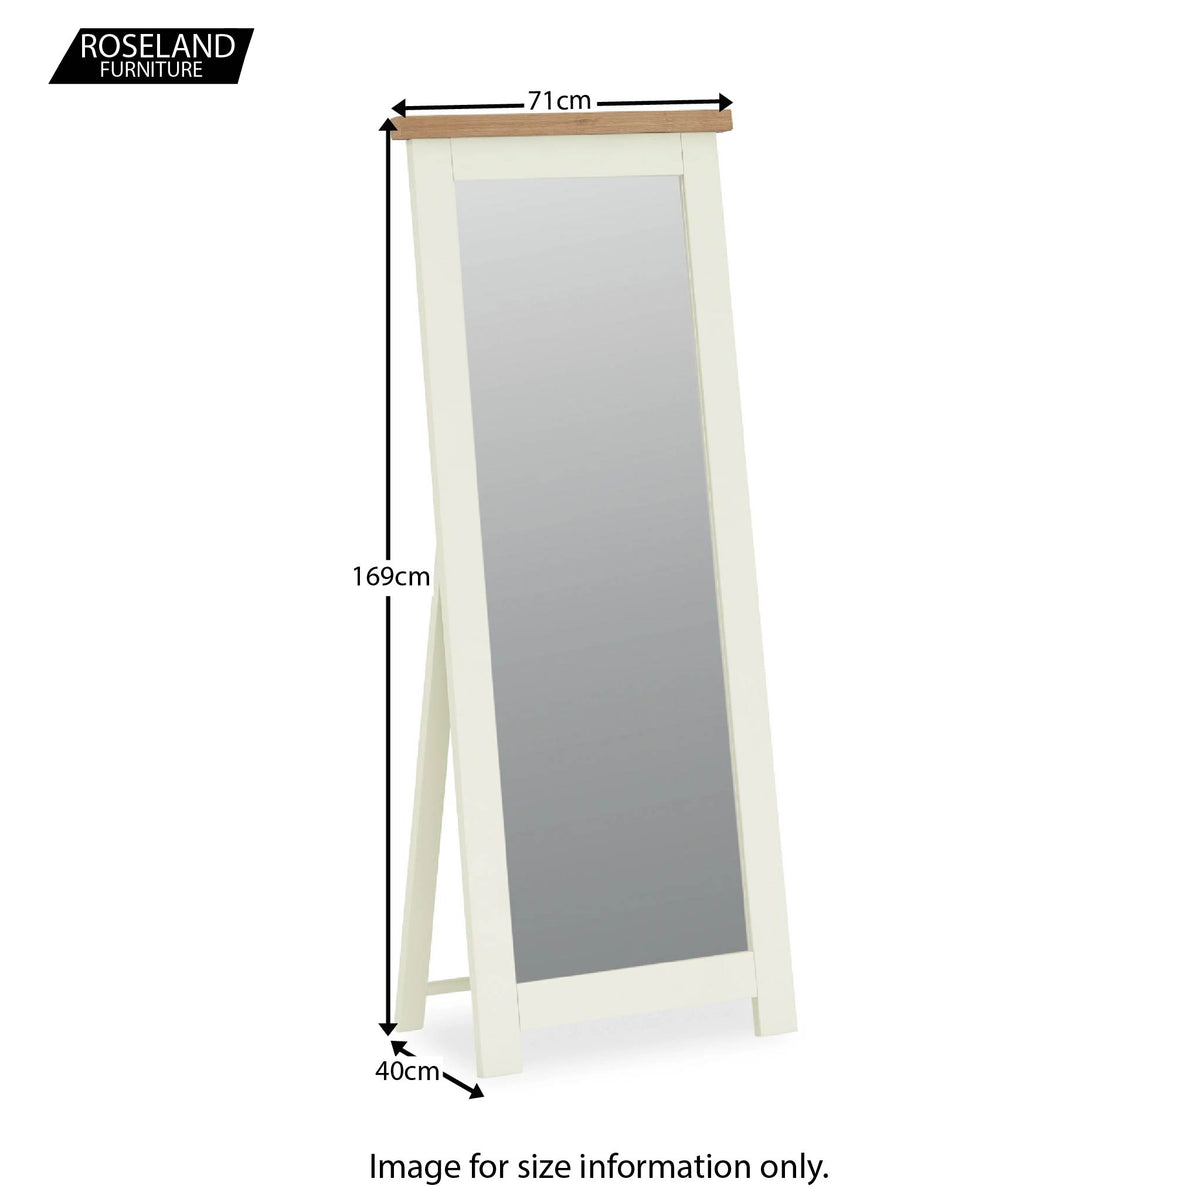 Daymer Cream Tall Bedroom Mirror - Size Guide